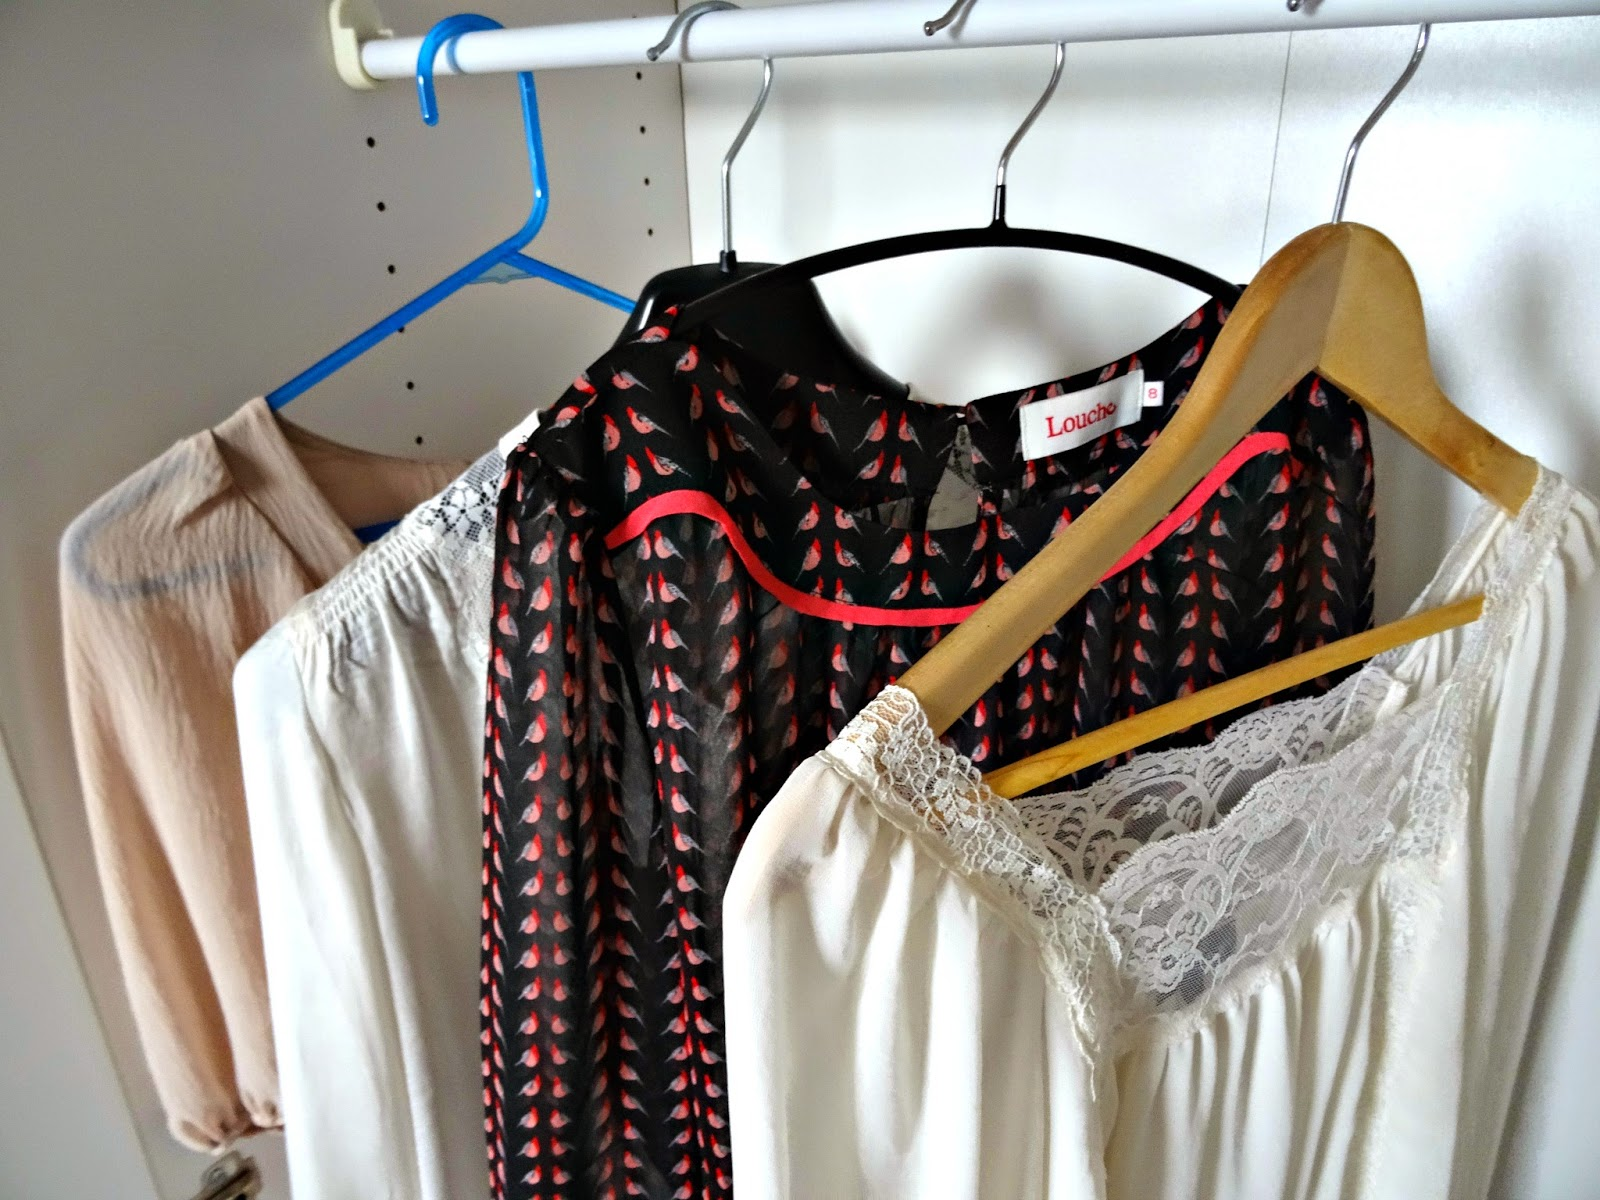 The right hanger for your clothes